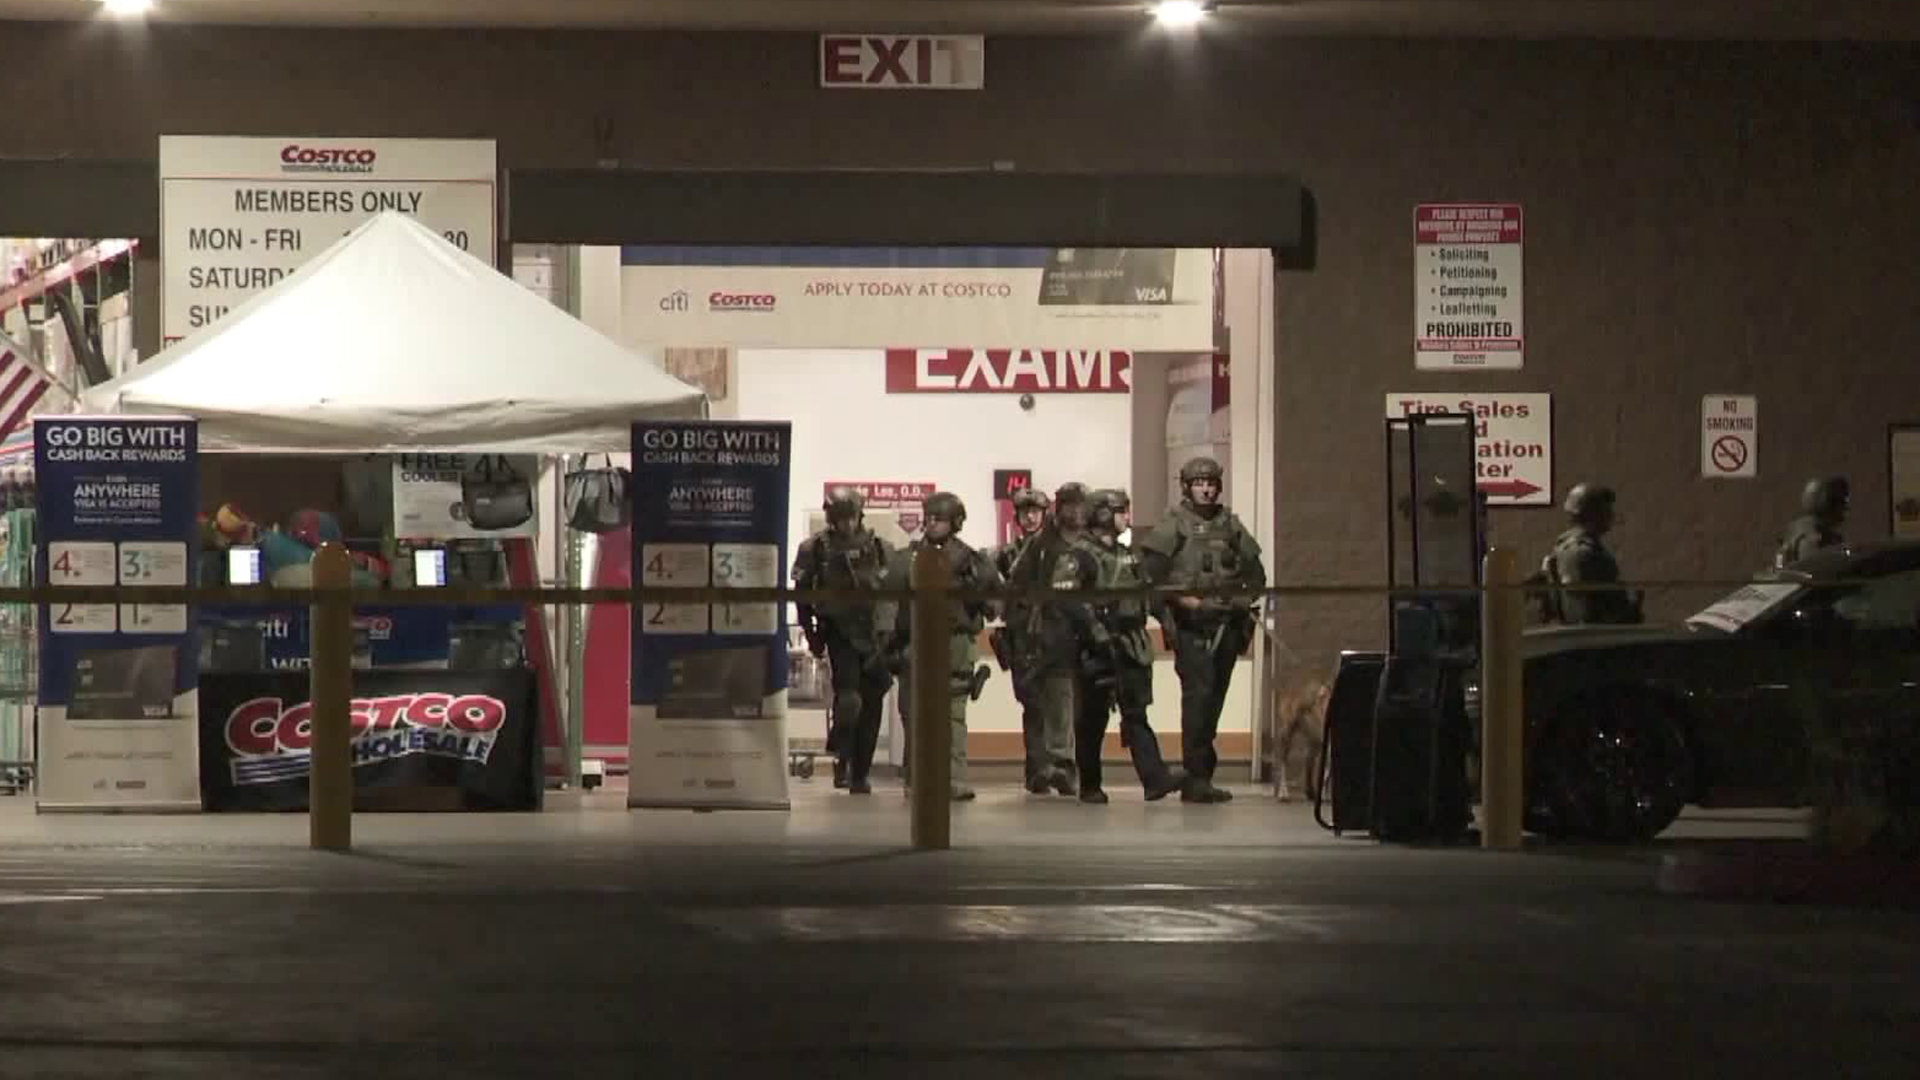 Authorities investigate the scene of a shooting that left one man dead and two people wounded at a Costco store in Corona on June 14, 2019. (Credit: KTLA)